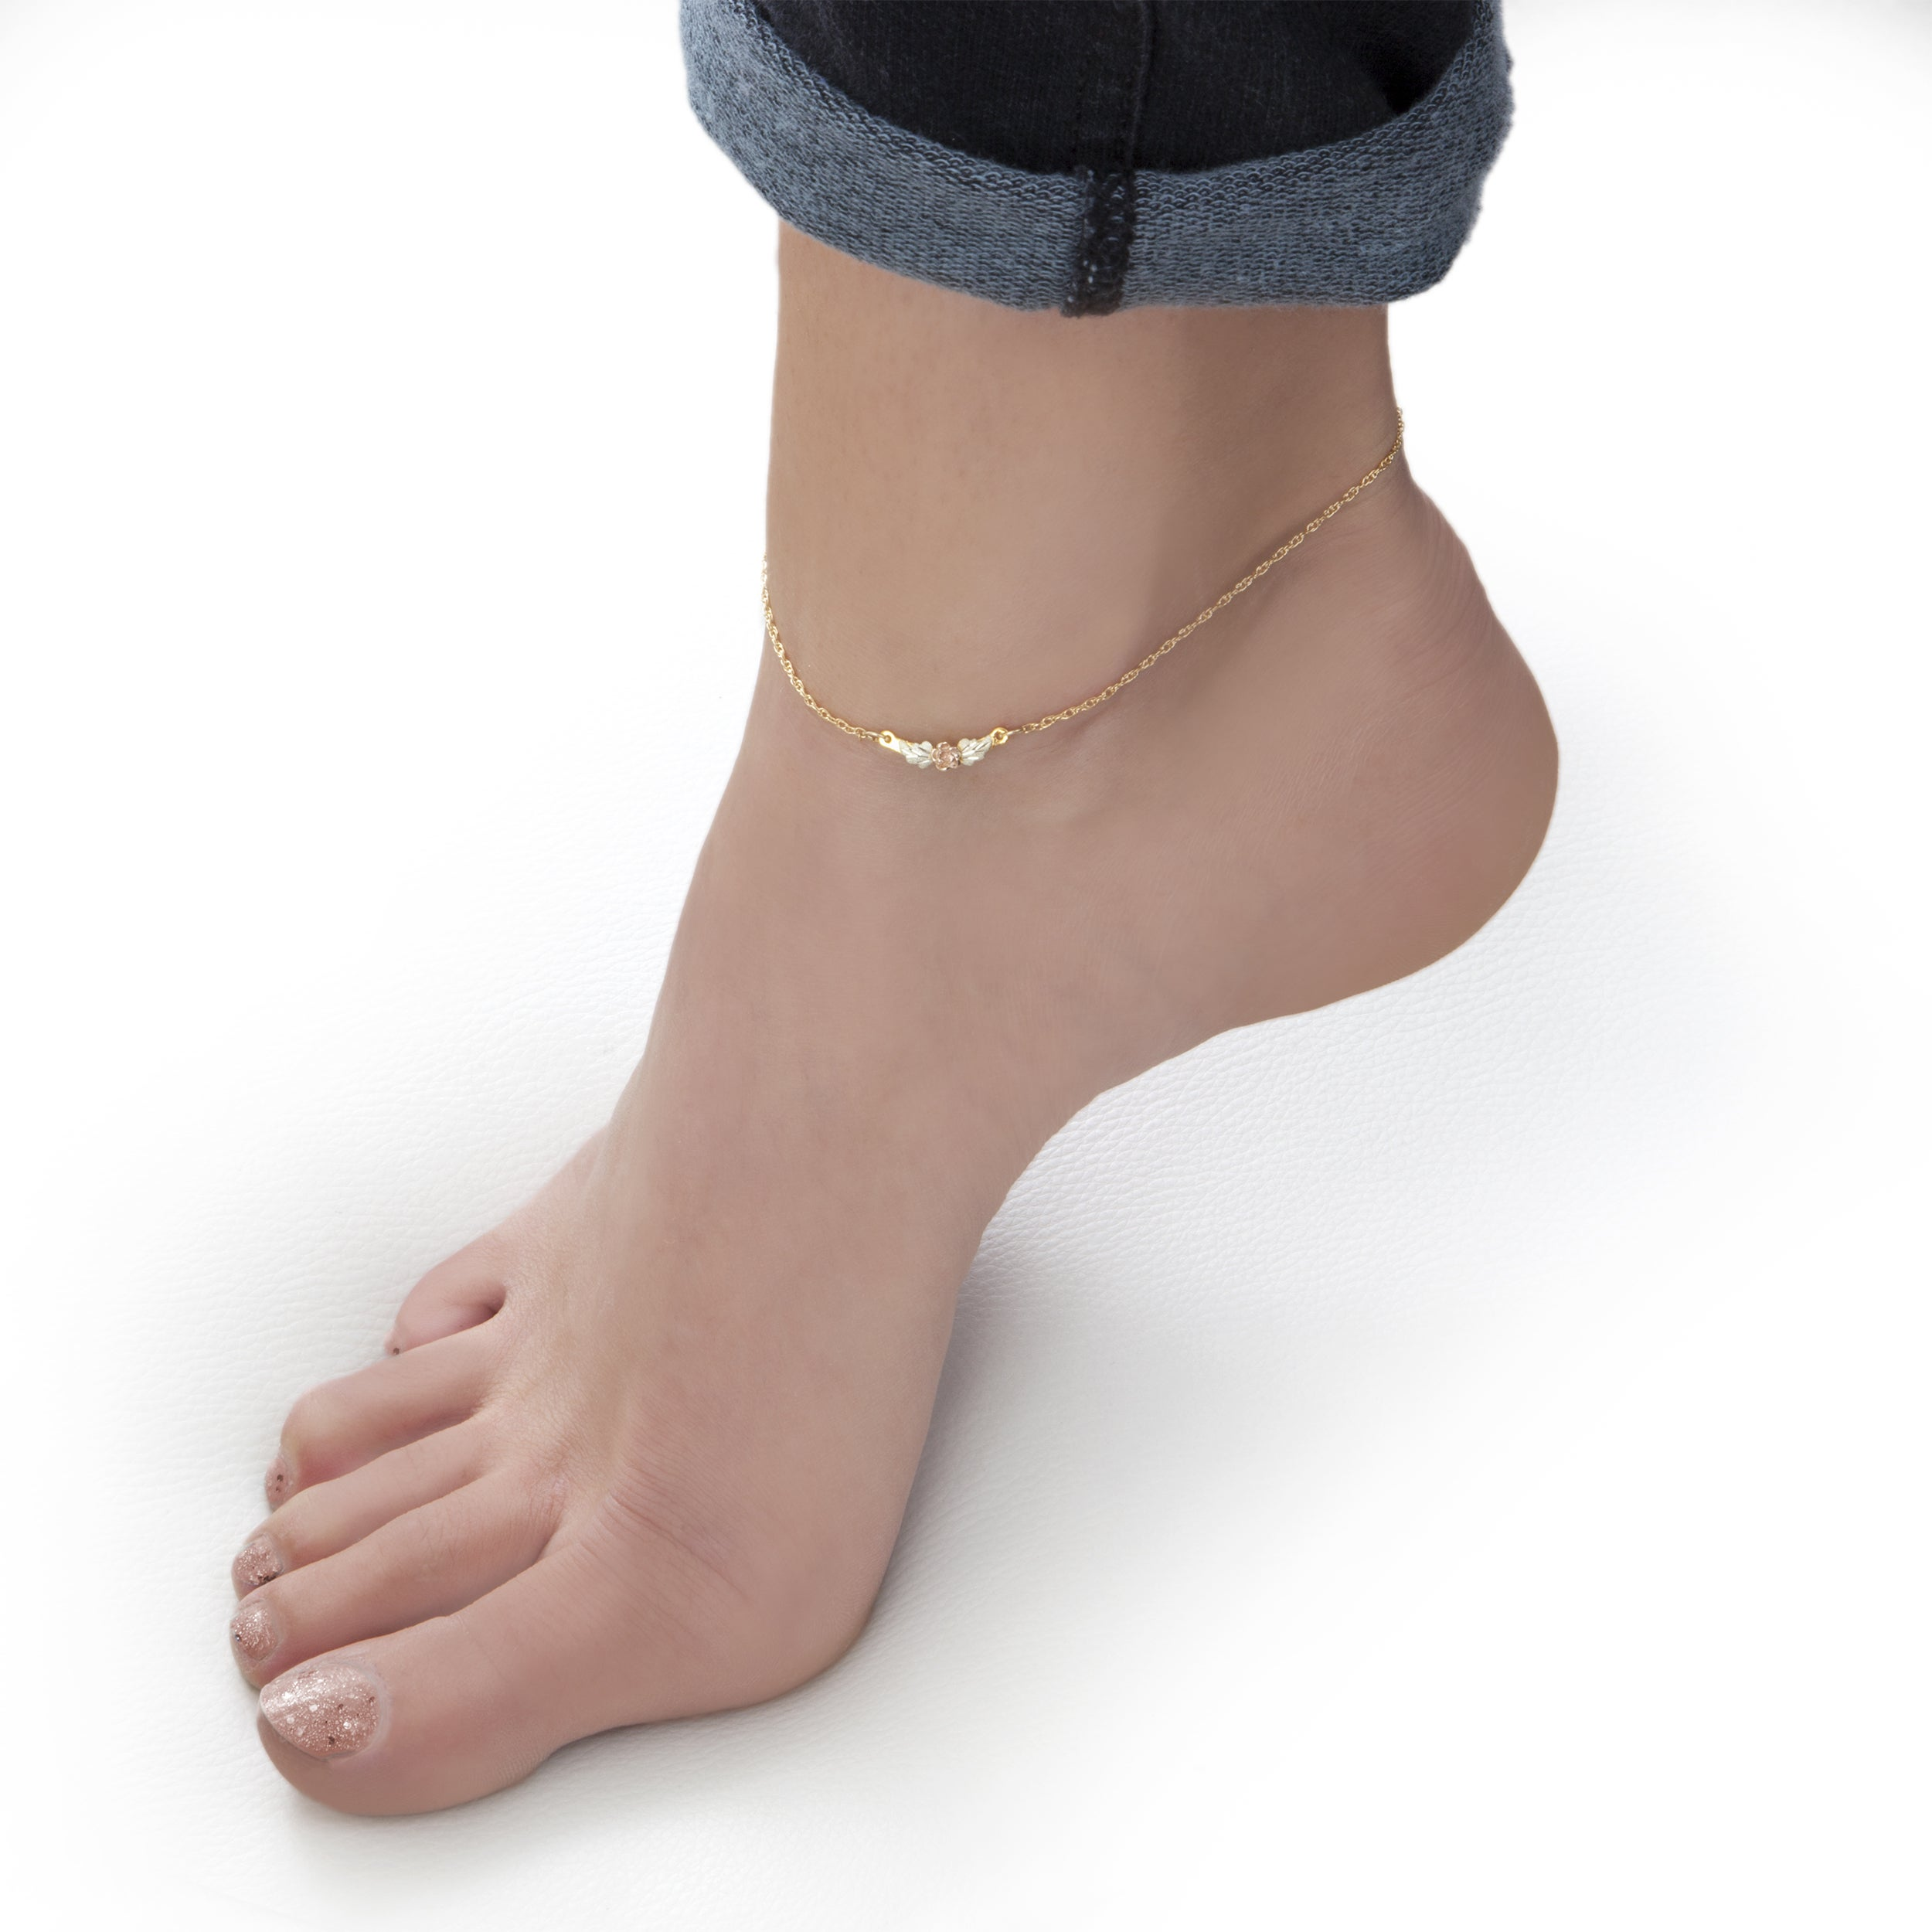 rylen rose flatform sandals flower anklet goldd strap gold ankle